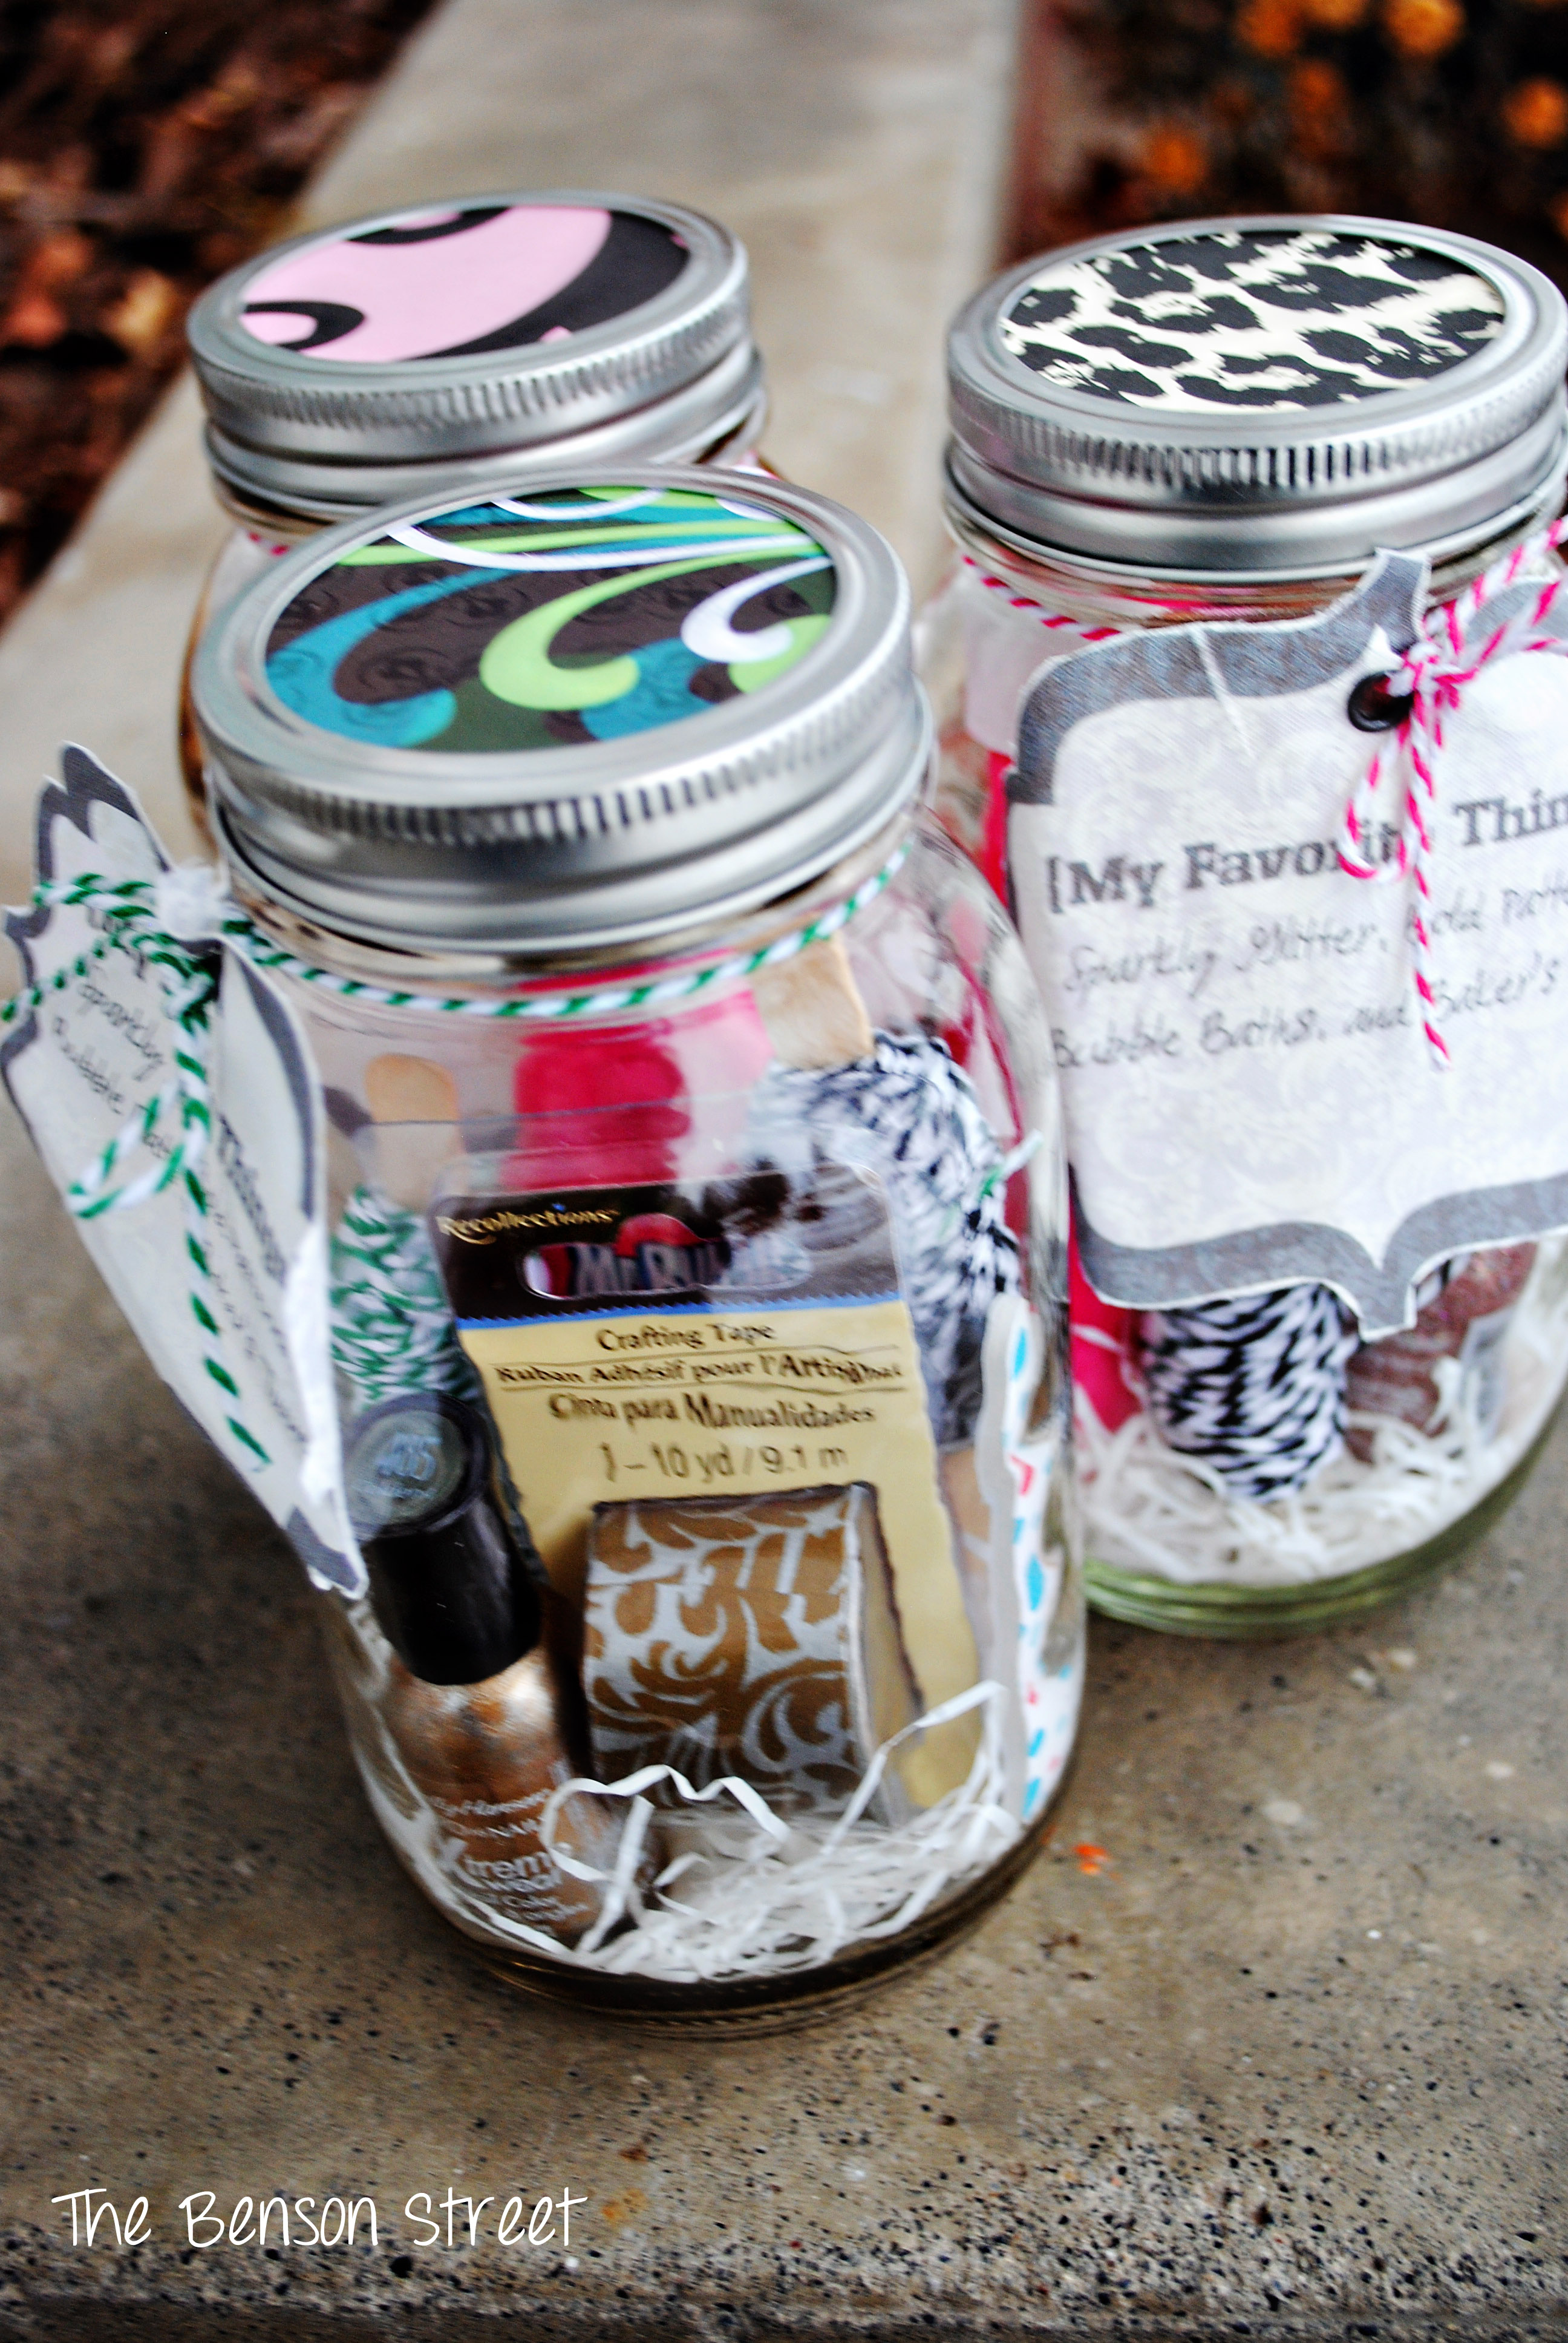 My Favorite Things Jars Amp Party The Benson Street